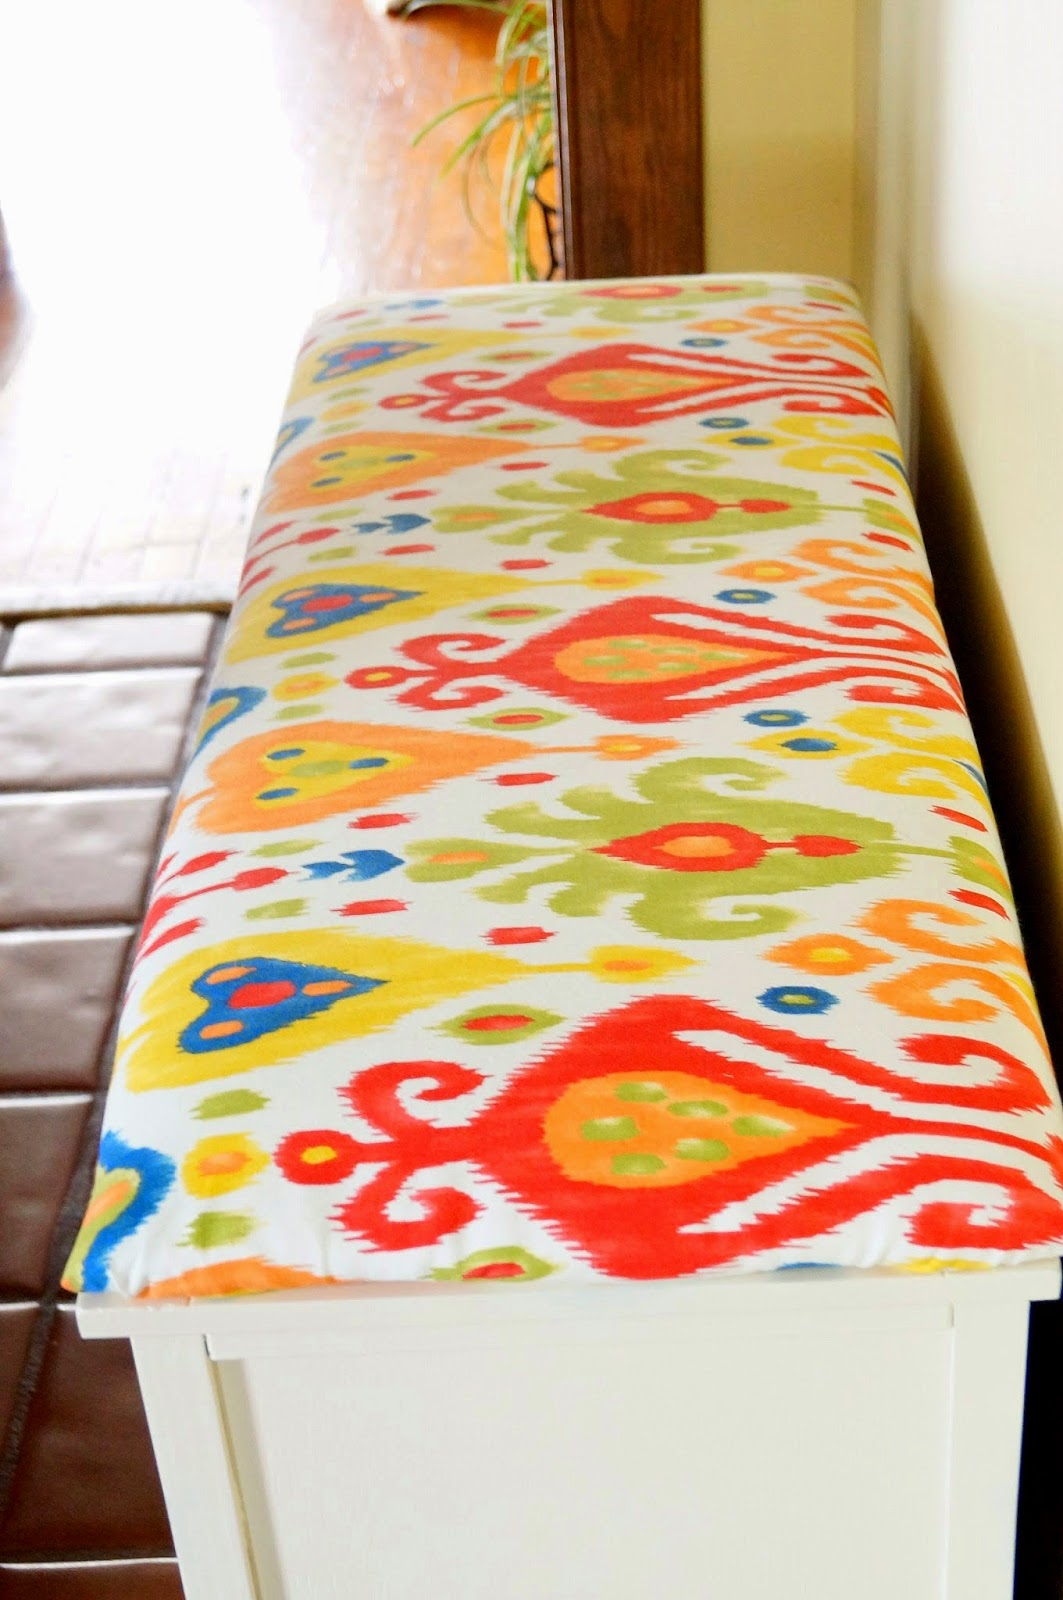 Diy Chair Cushion No Sew Jessica Charles Chairs Old House To New Home